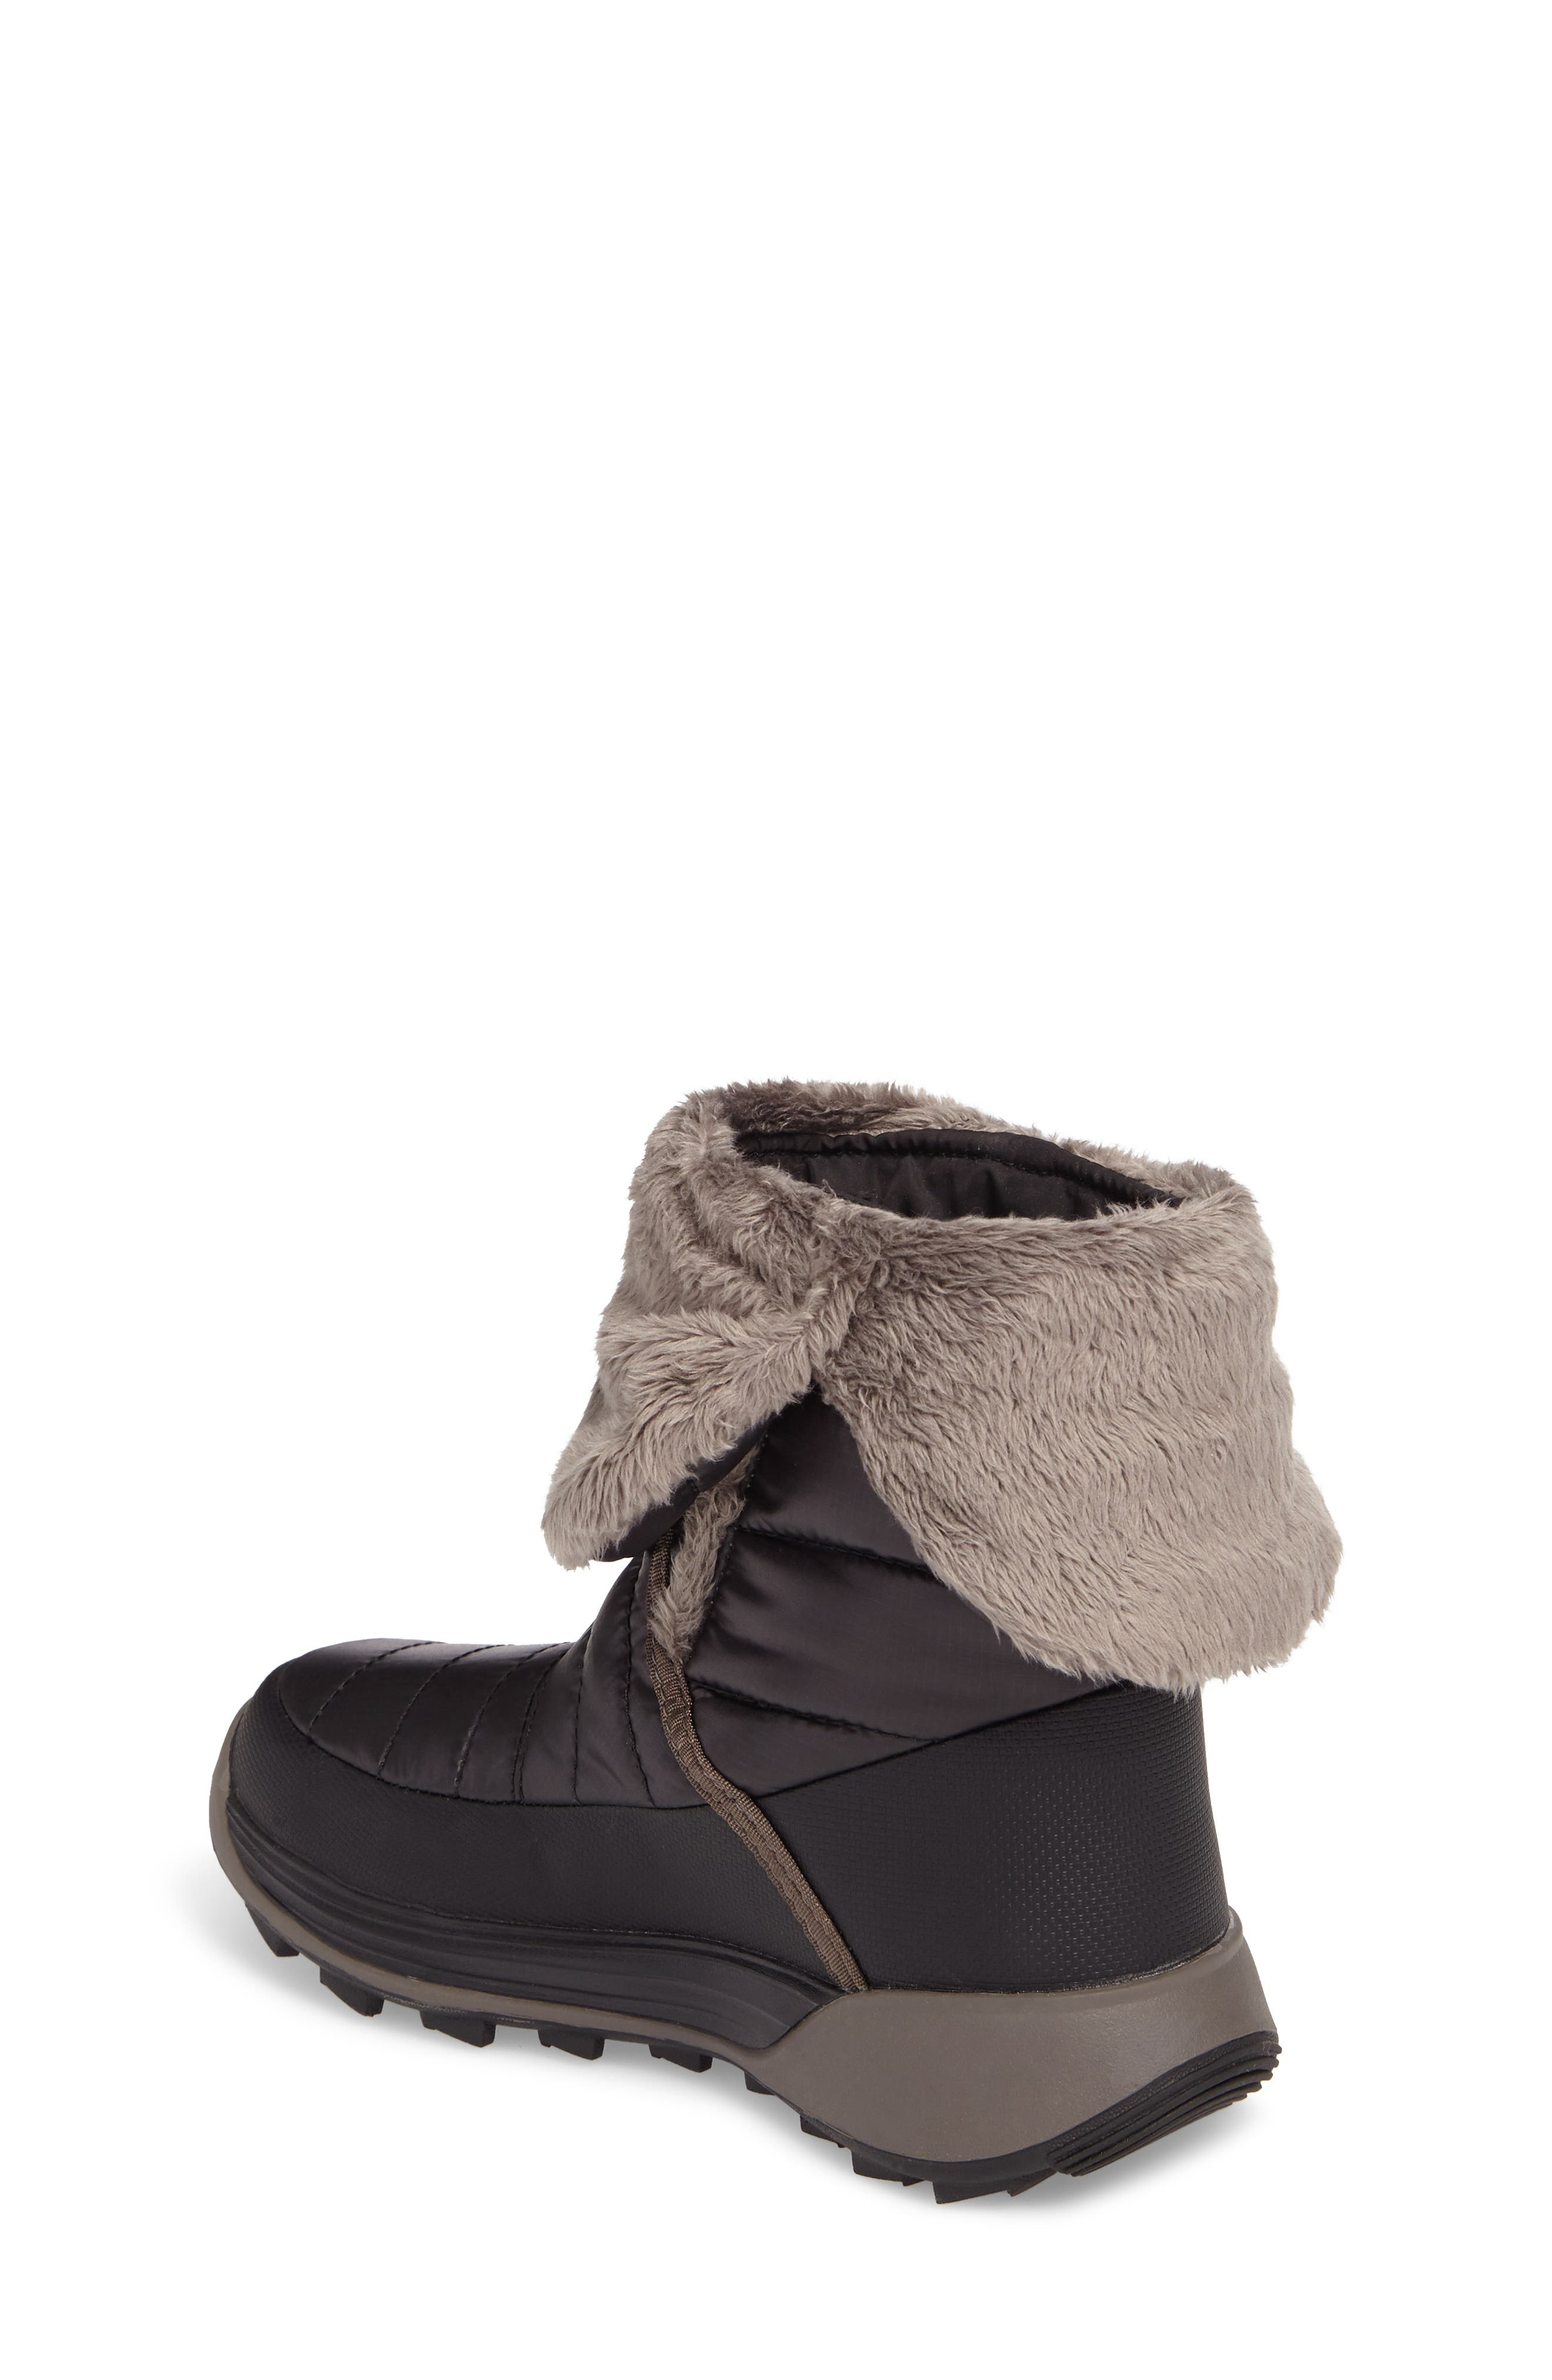 Amore II Water-Resistant Winter Boot,                             Alternate thumbnail 2, color,                             TNF BLACK/ DARK GULL GREY